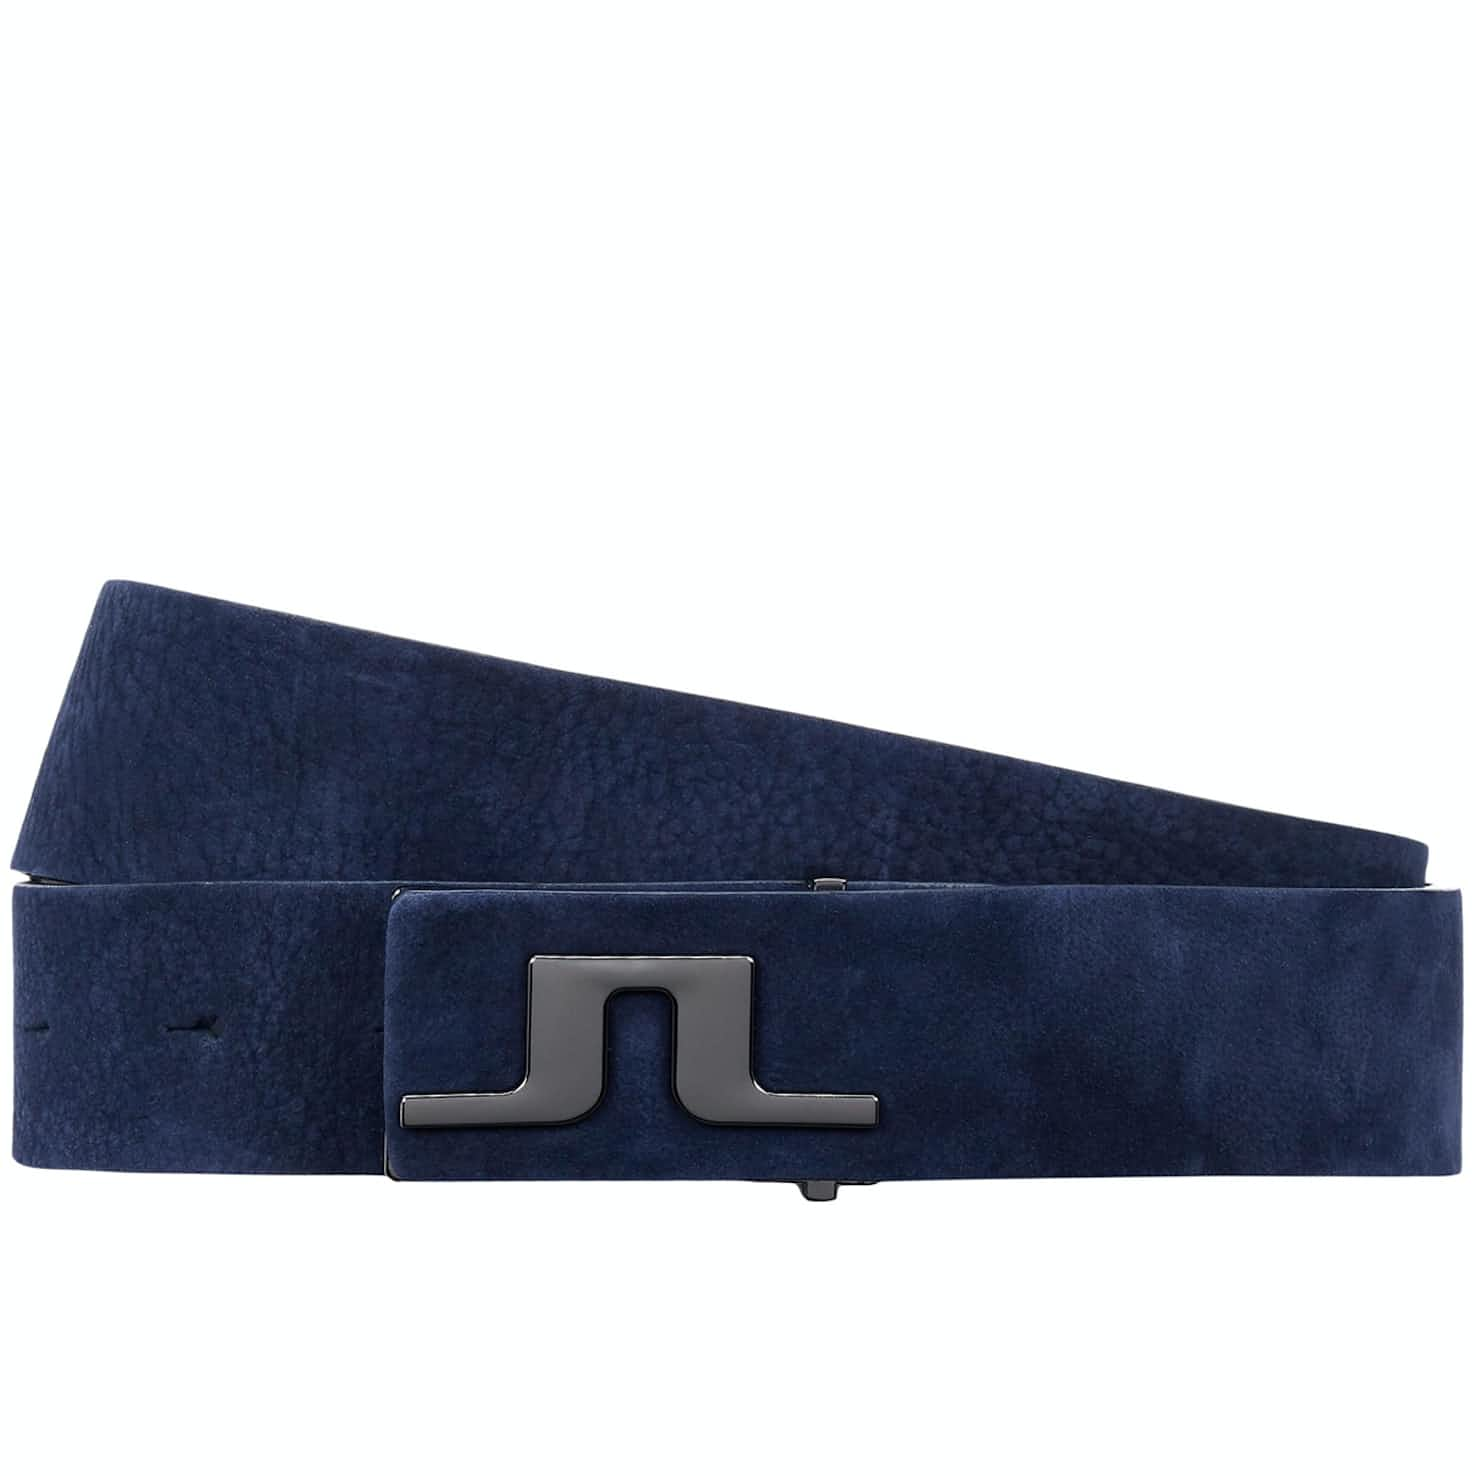 Carter Brushed Leather JL Navy - AW19